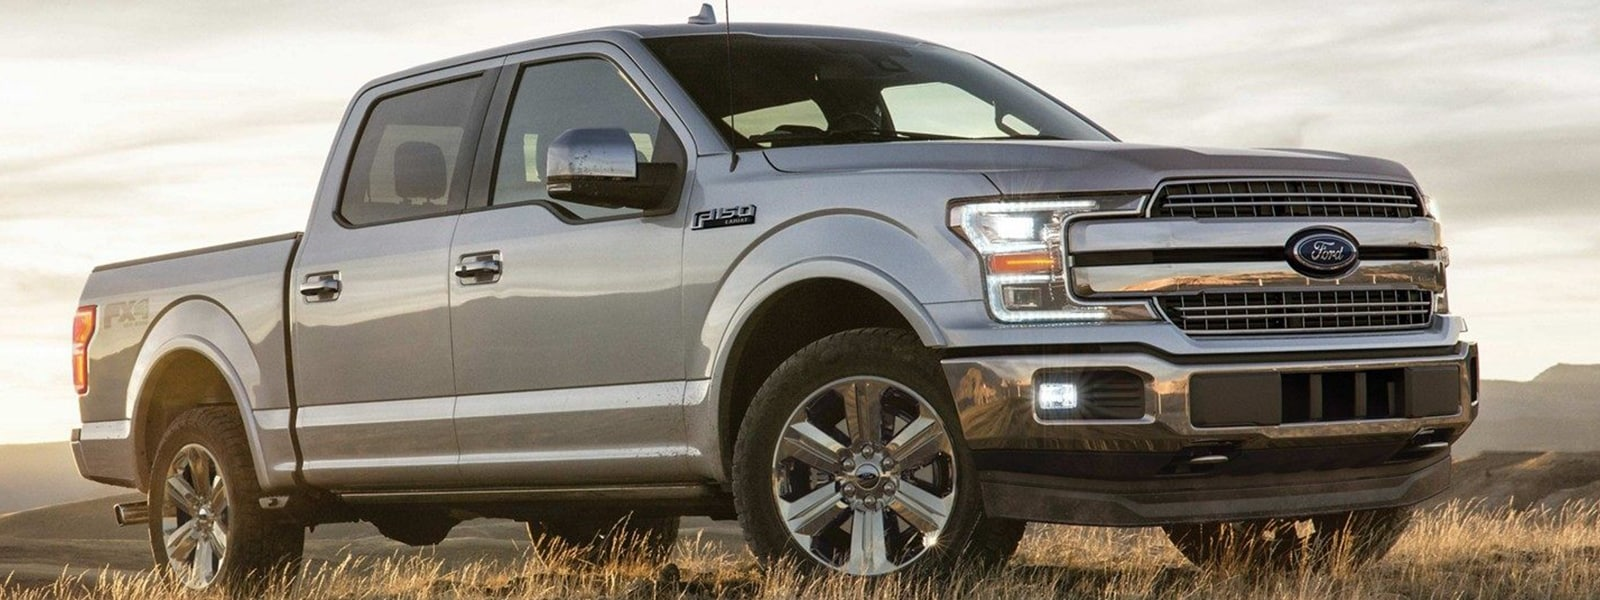 Ford Dealers Nj >> 2019 Ford F 150 For Sale Echelon Ford Local Ford Dealer In Nj